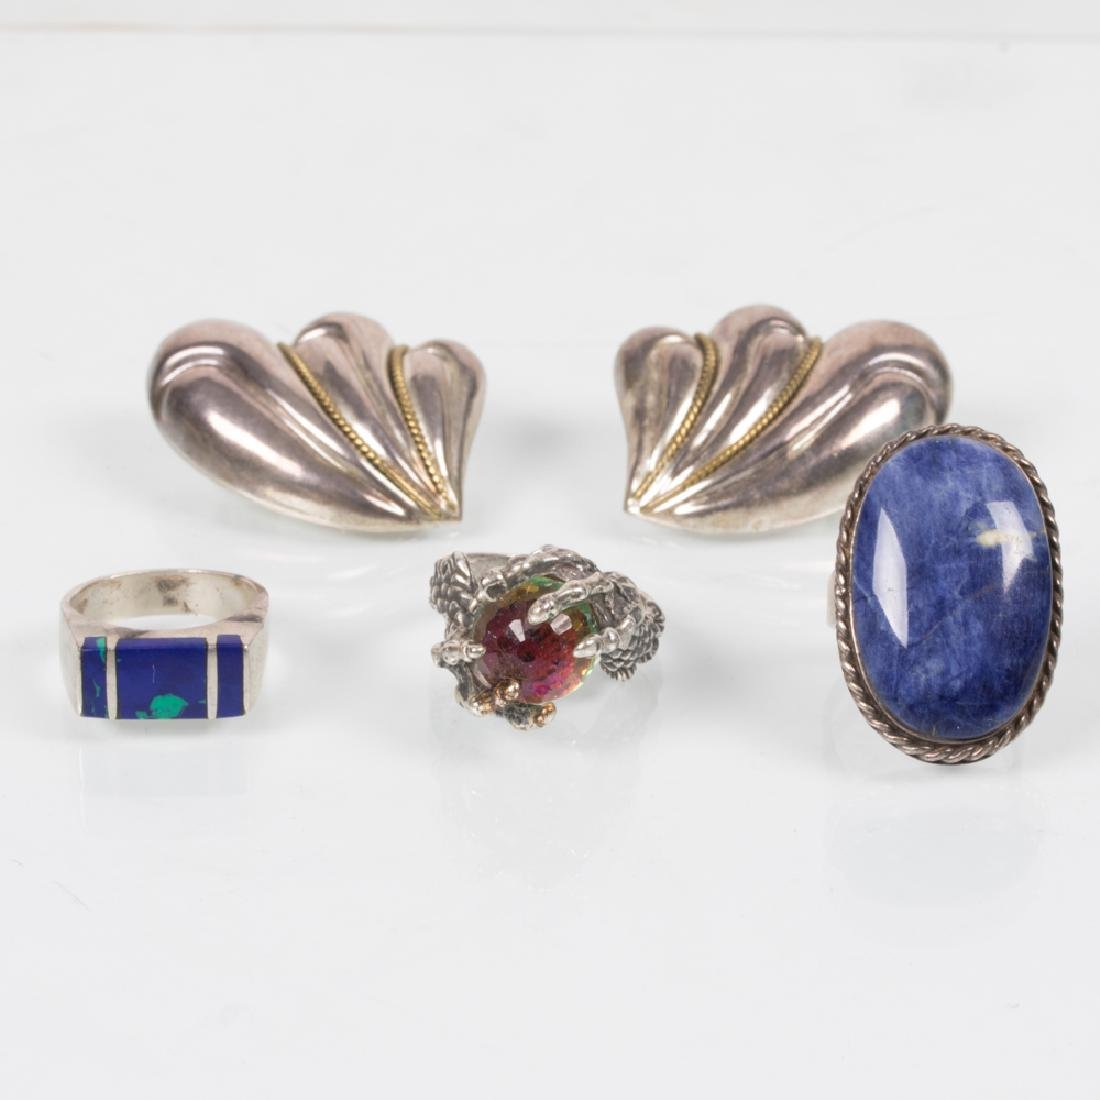 A Collection of Silver and Sterling Silver Jewelry,